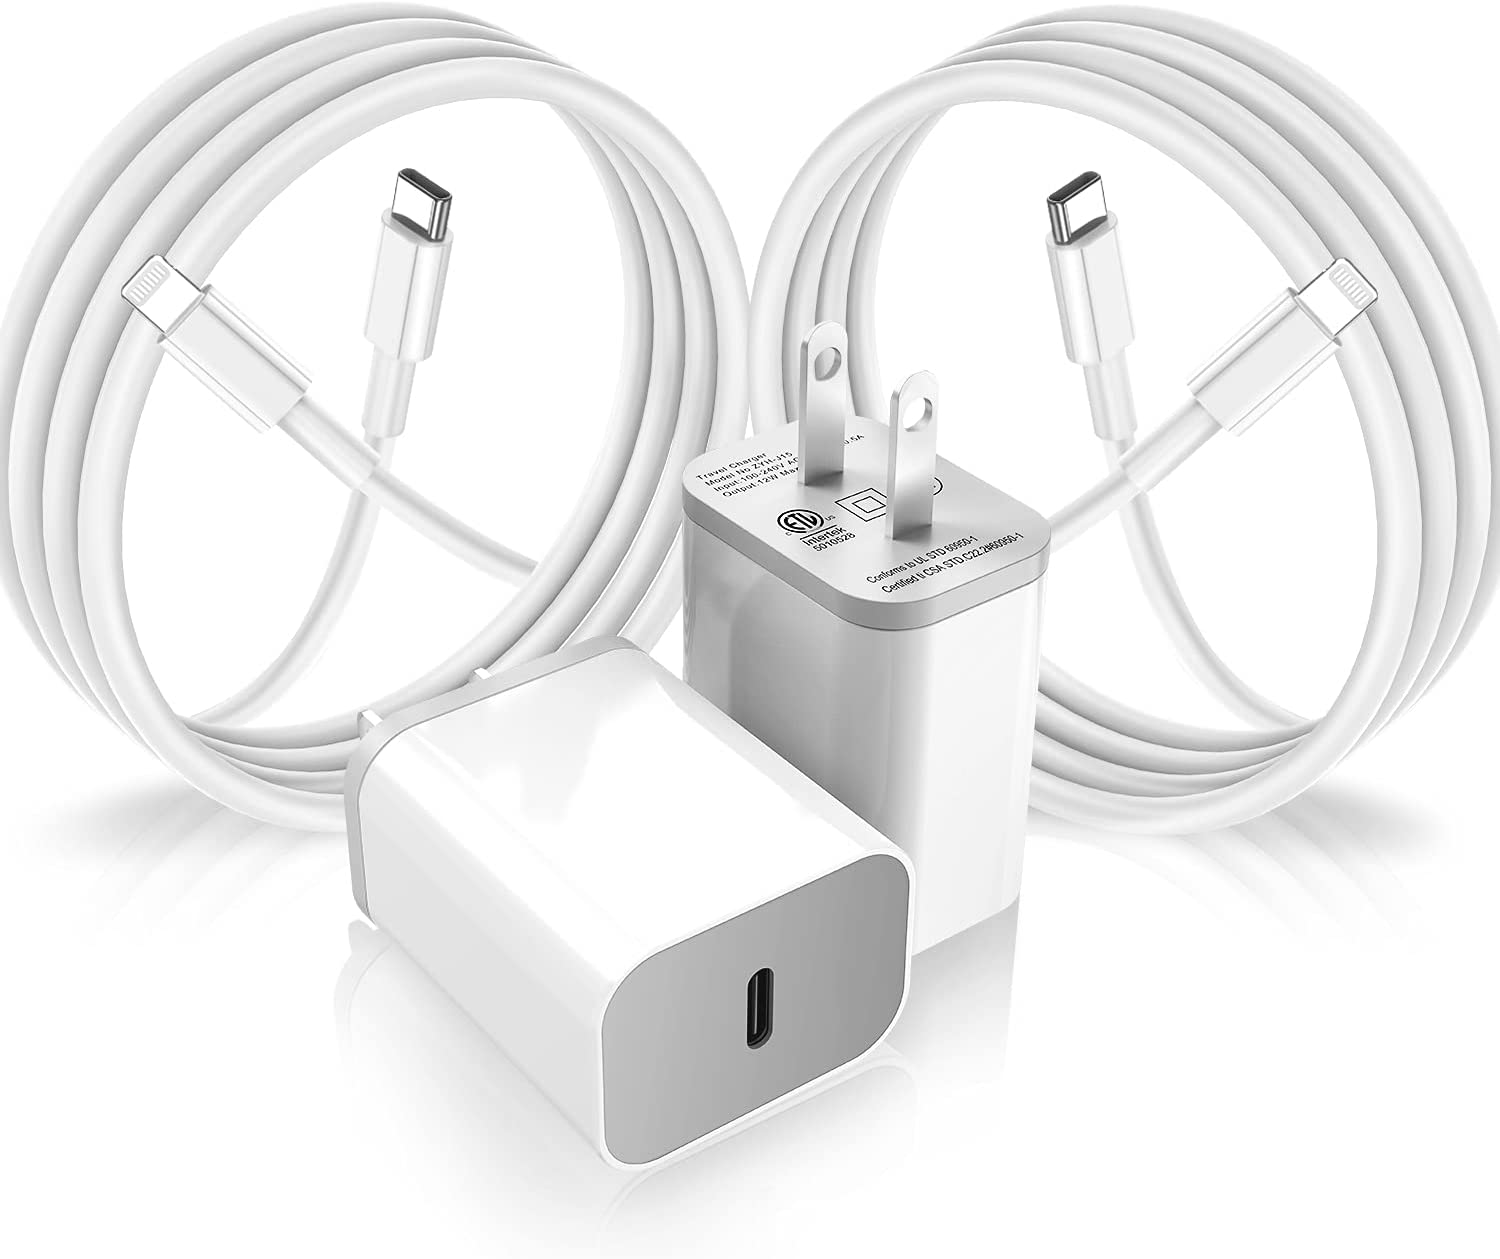 iPhone Fast Charger 2Pack,MFi Certified USB-C Wall Charger with 6Ft Type C to Lightning Cable for iPhone 12 11 Pro XR XS Max X 8 Plus iPad AirPods and More